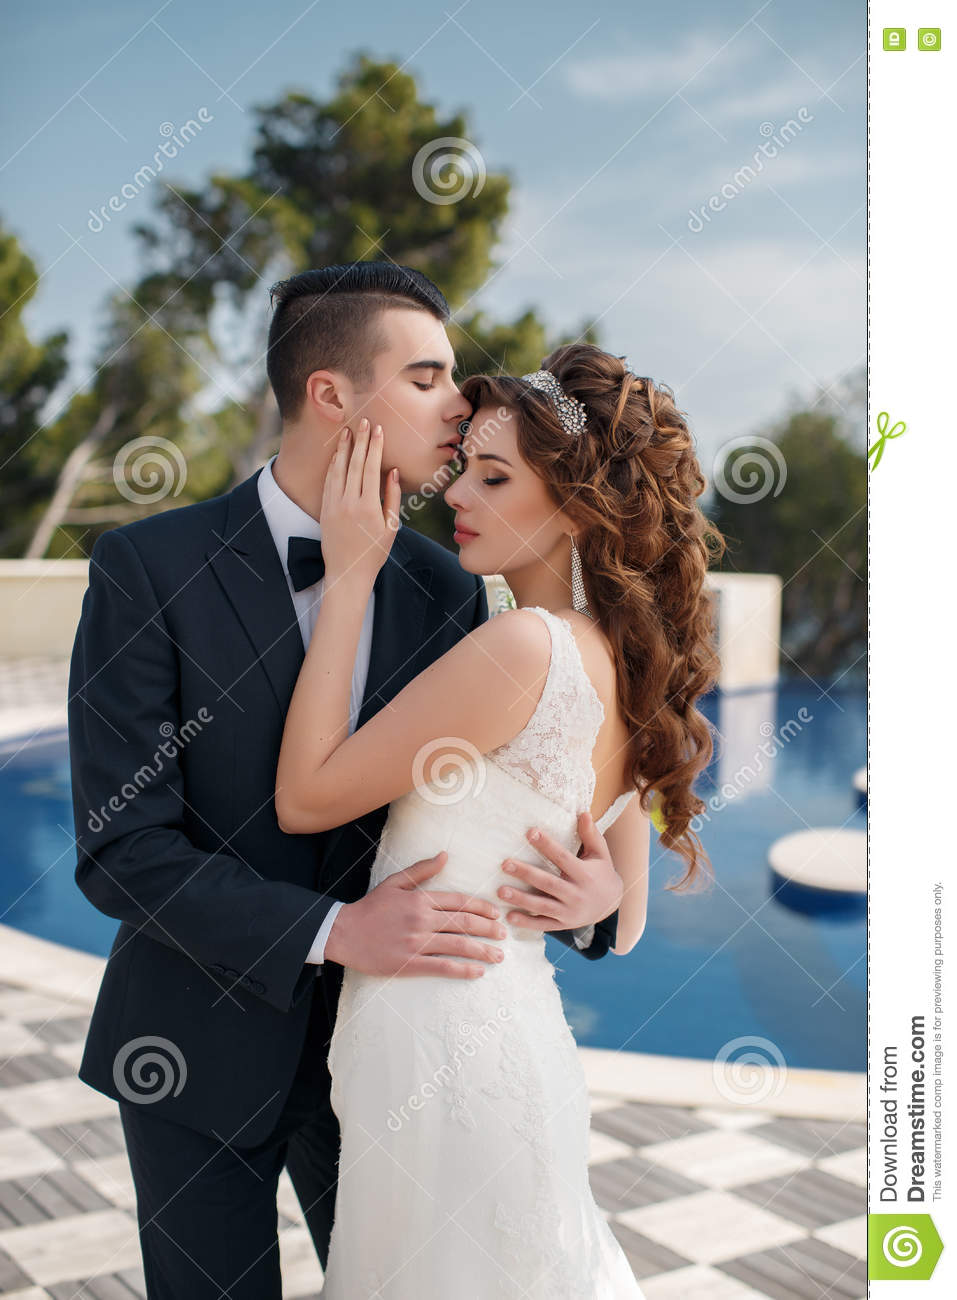 Download The Bride And Groom Beside Pool With Blue Water Stock Photo